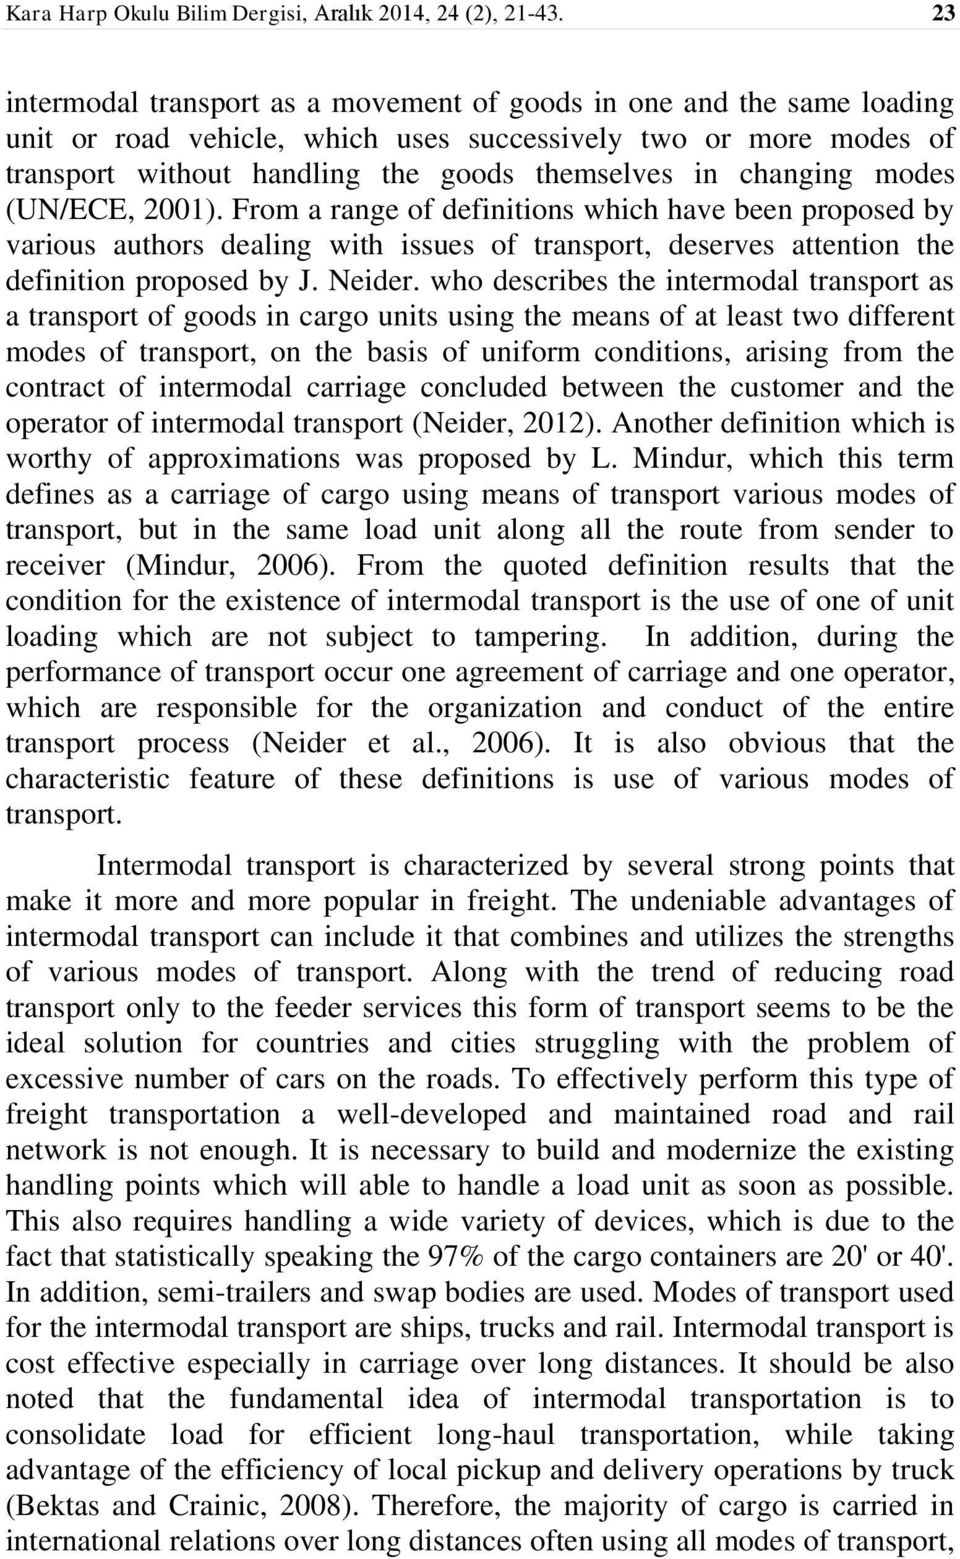 changing modes (UN/ECE, 2001). From a range of definitions which have been proposed by various authors dealing with issues of transport, deserves attention the definition proposed by J. Neider.